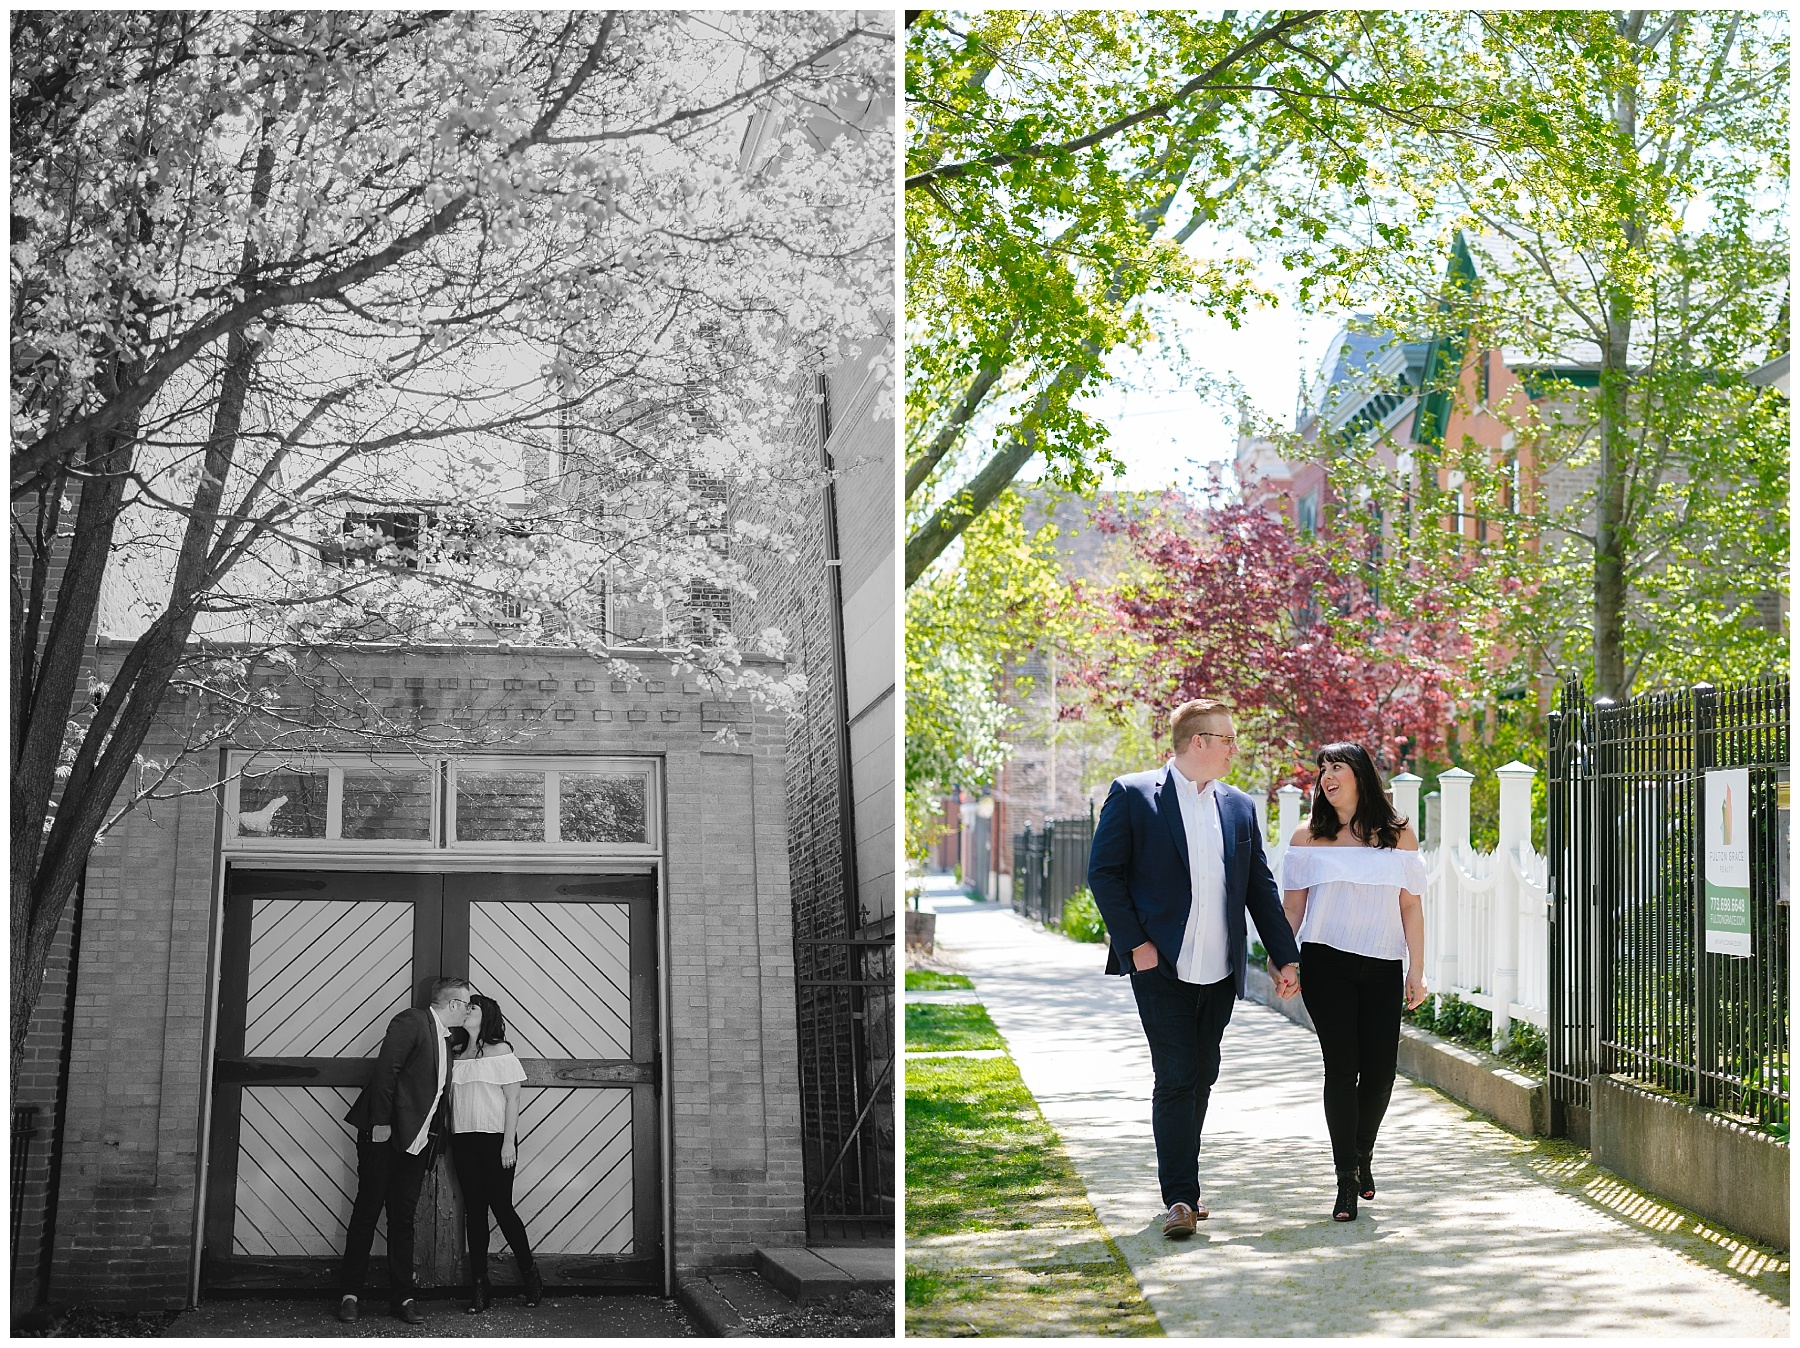 Destination Engagement Photographer, Chicago Engagement Session, Wicker Park Engagement